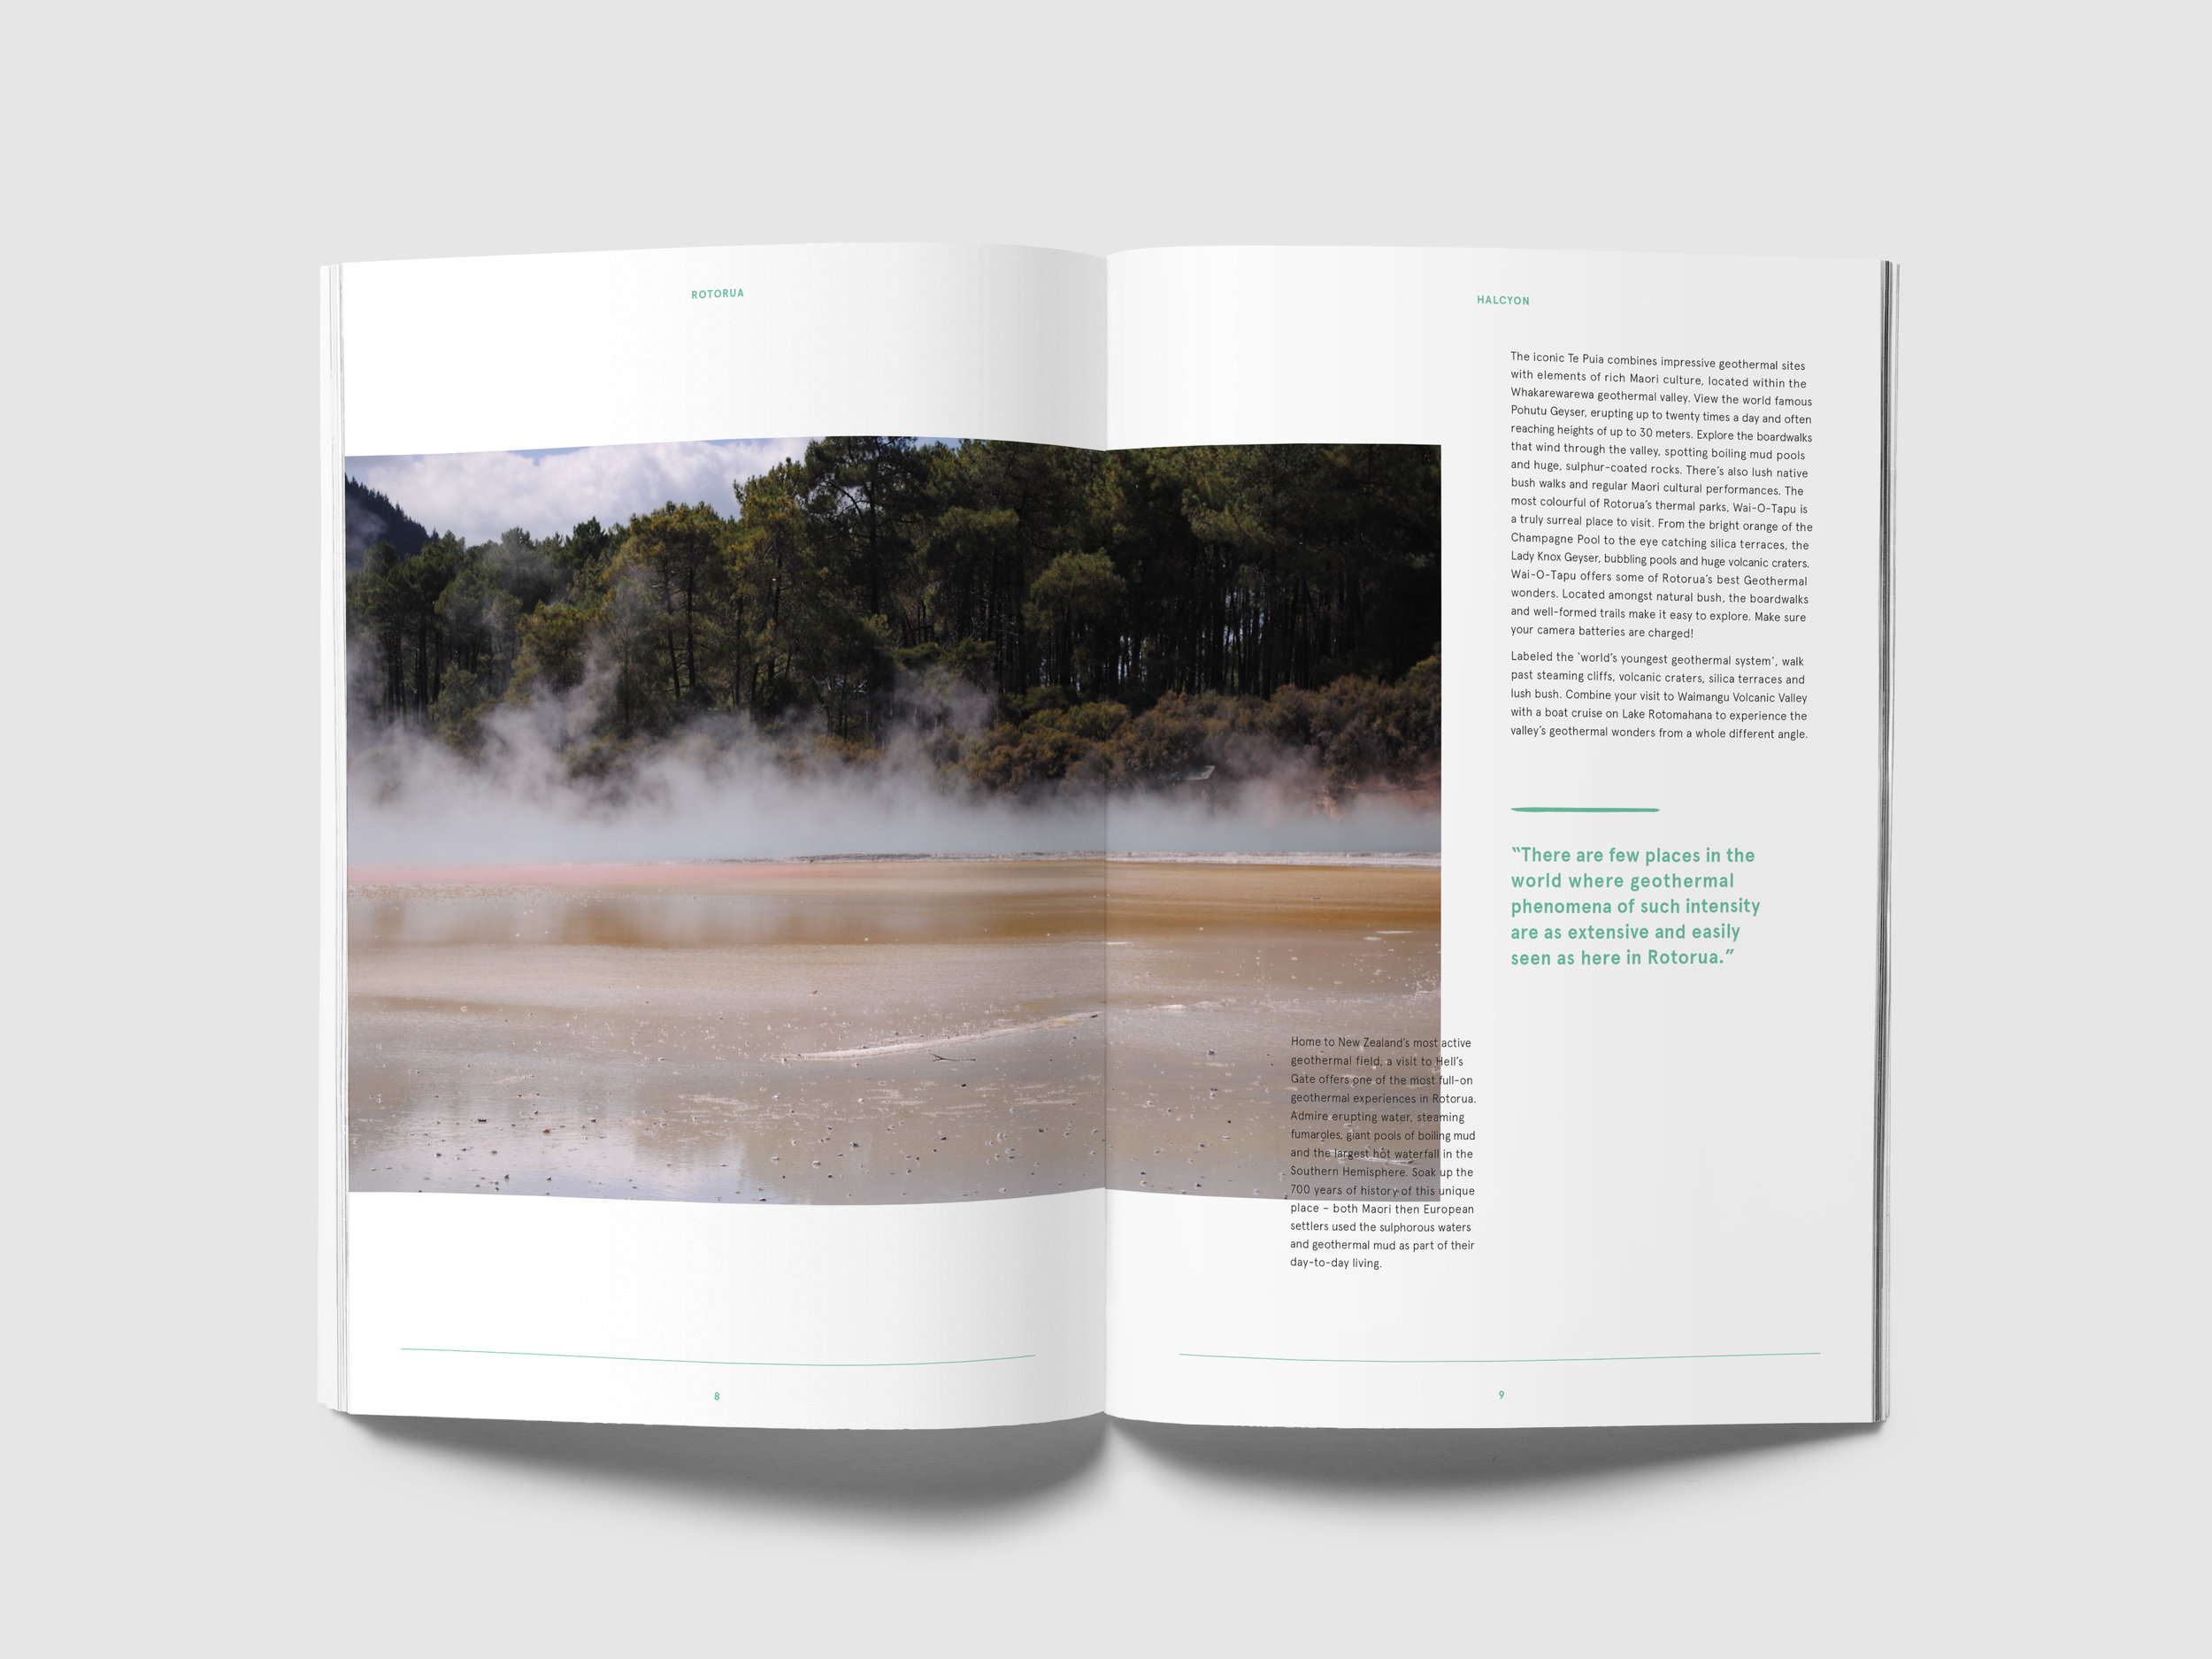 Halcyon-Magazine_Layout-Design_Inside-Pages_Rotorua-2.jpg